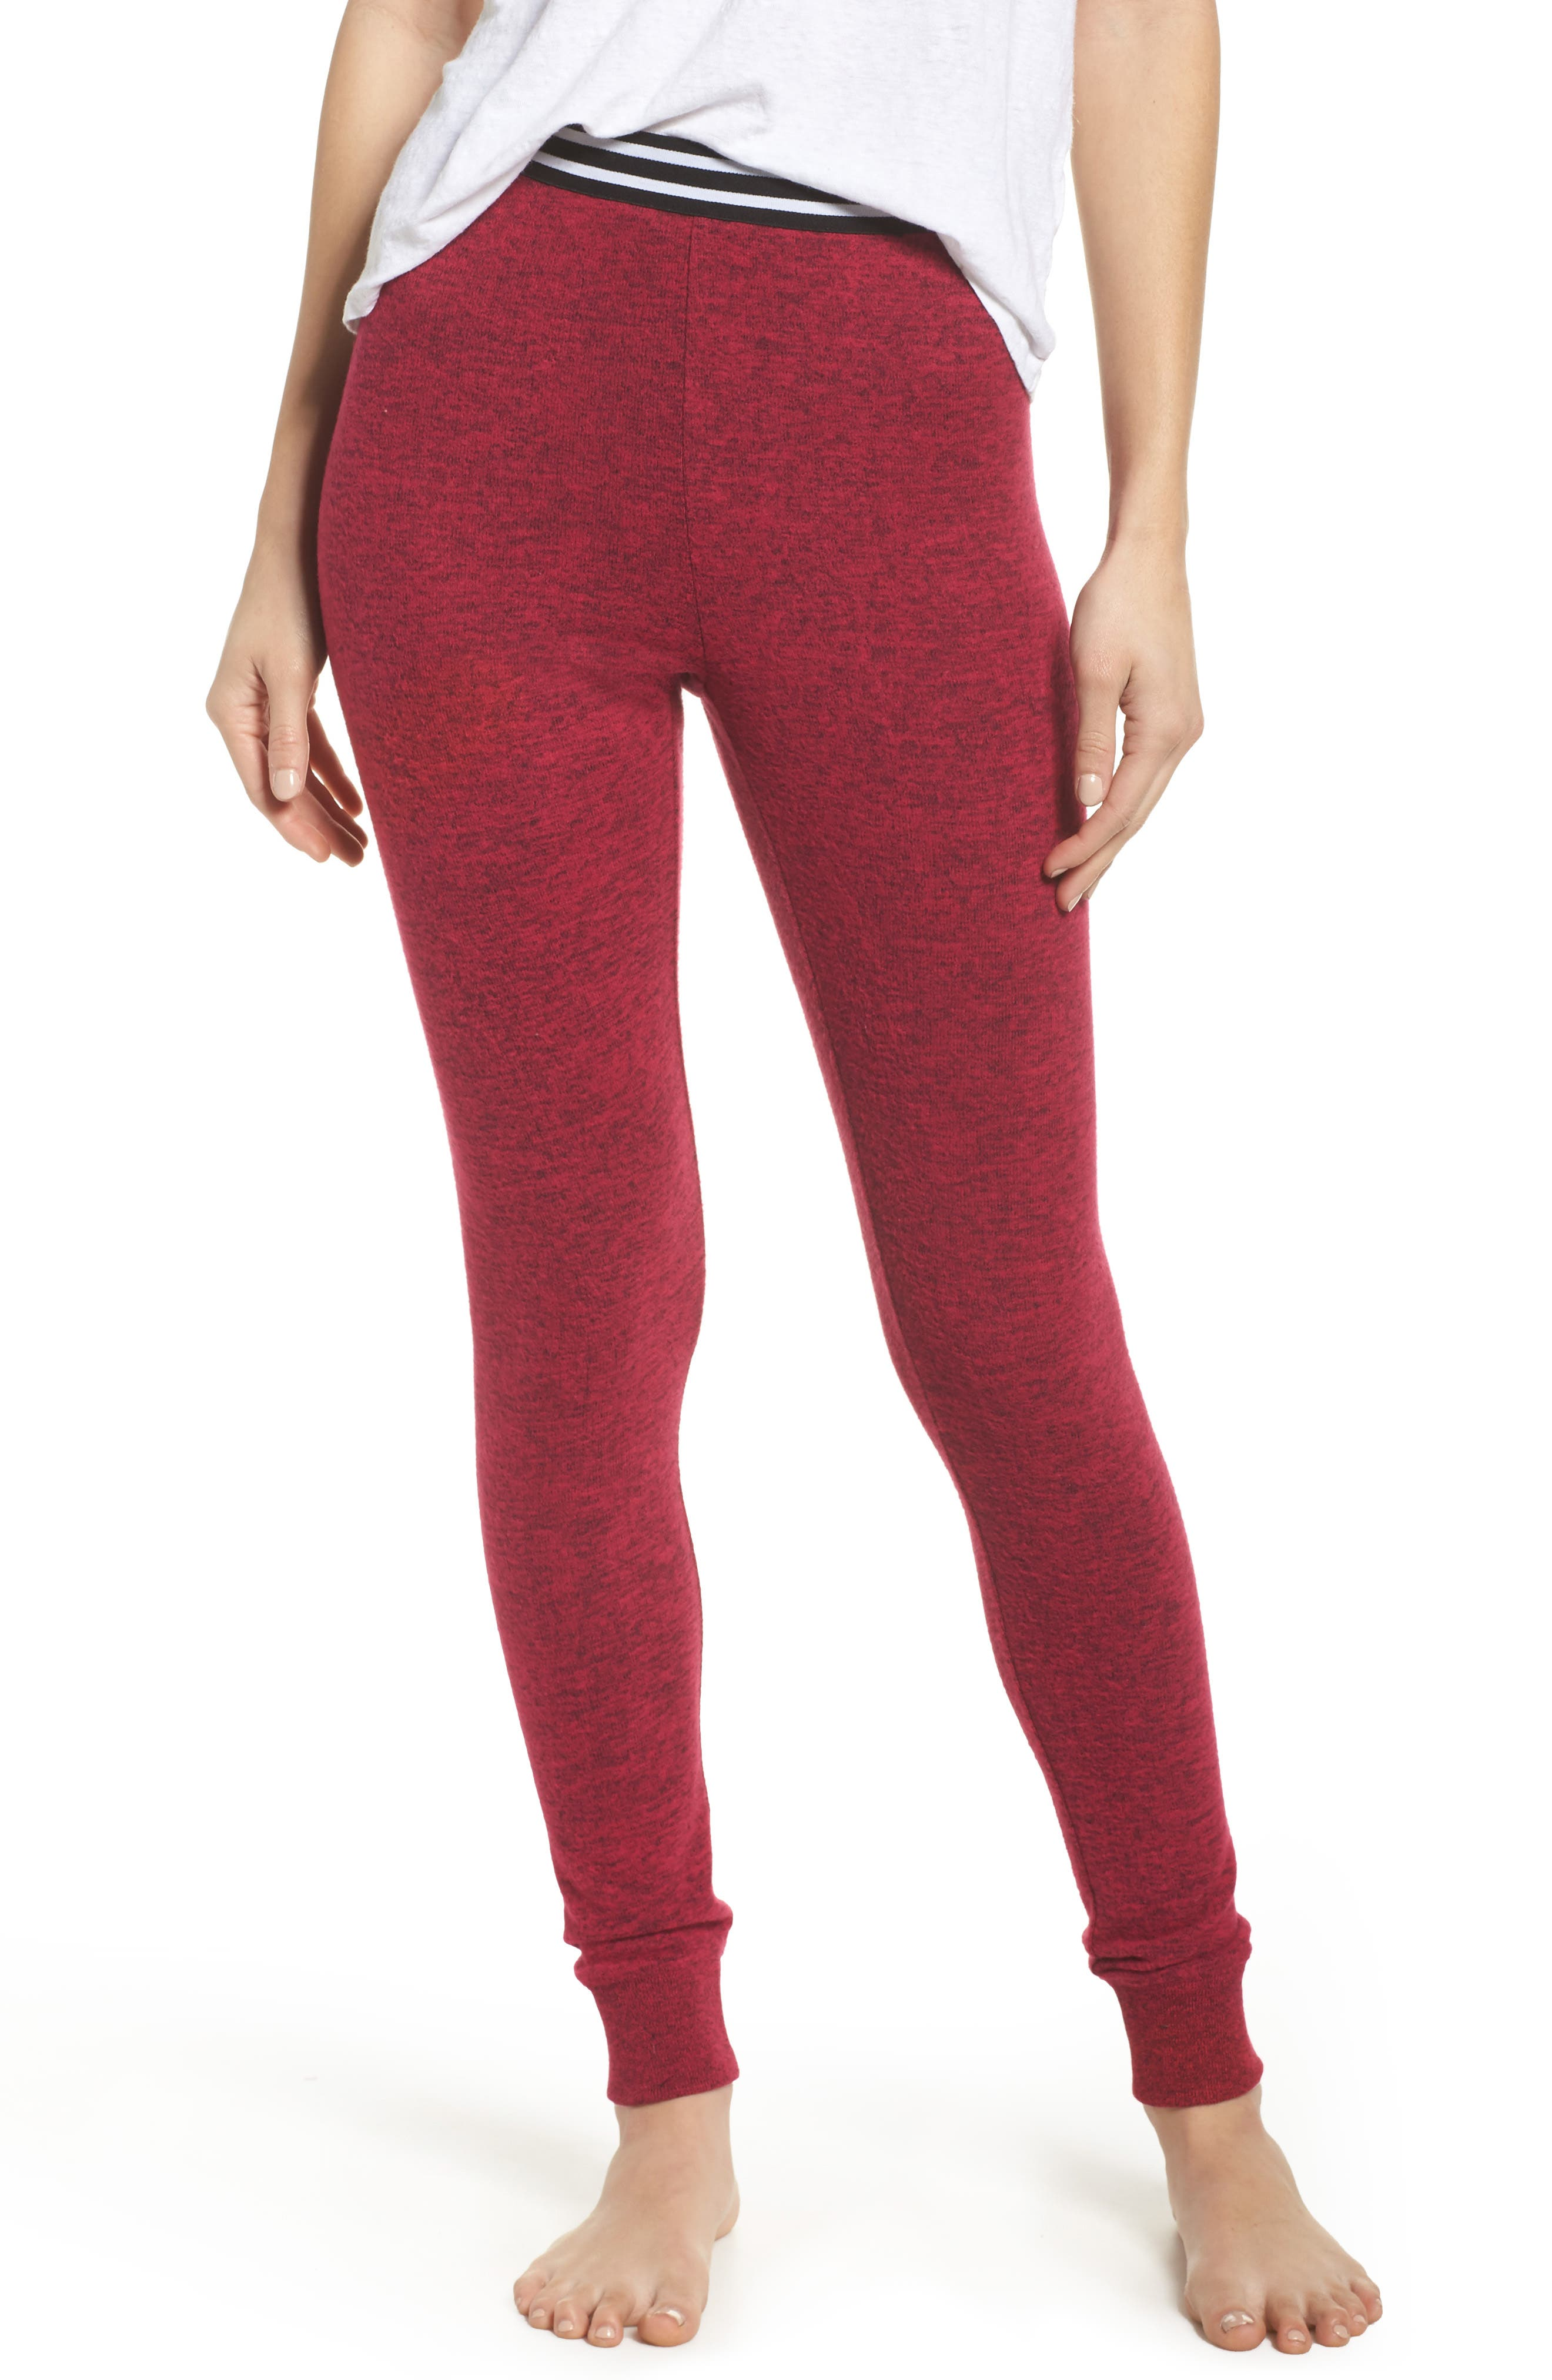 Cuddle Up Lounge Leggings,                             Main thumbnail 1, color,                             Pink Vivacious Marl